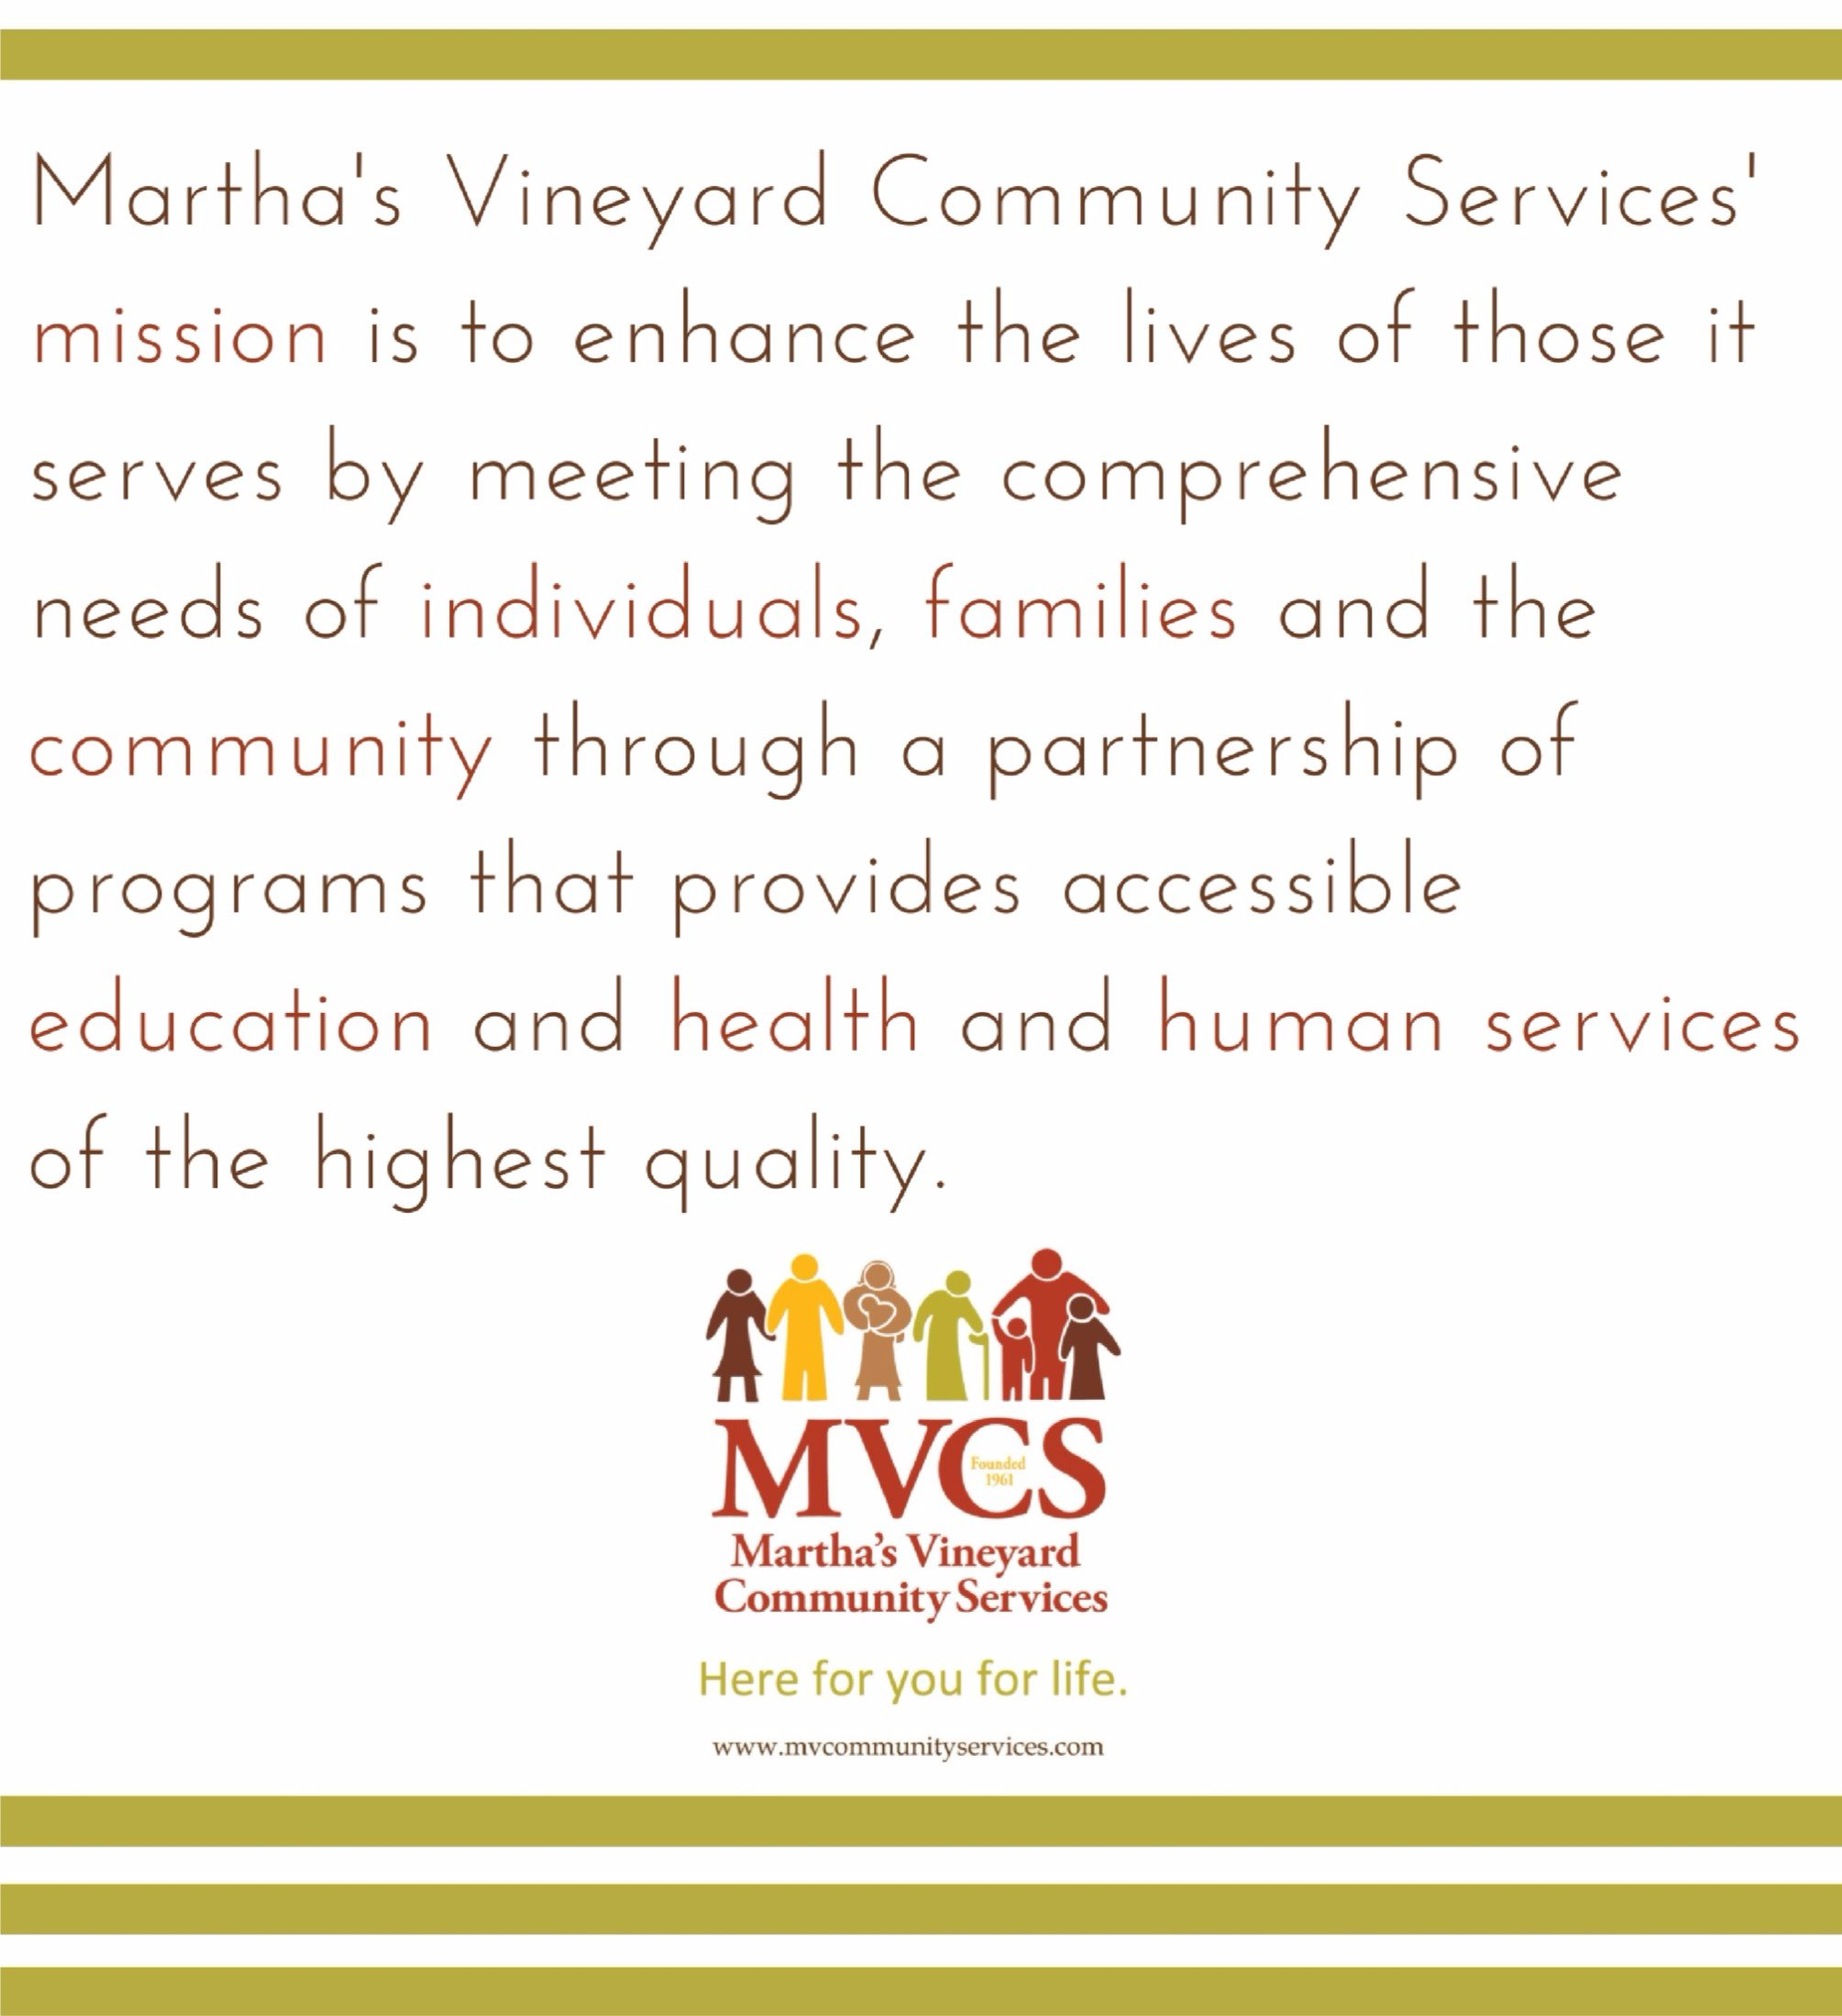 MVCS Mission: Here for you for Life